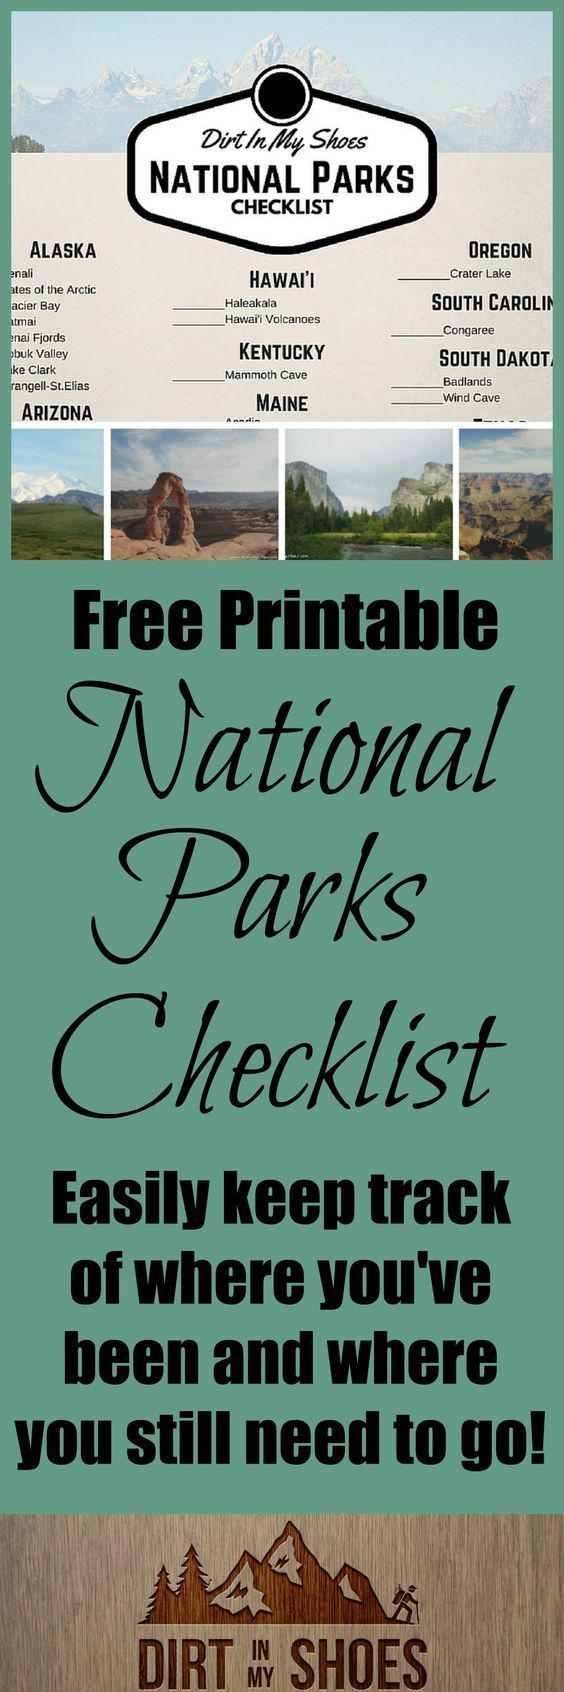 If you LOVE the national parks and hope to visit as many as you can, check out this free printable! With 59 national parks in the United States, it is hard to keep track of them all -- but now you can with this checklist